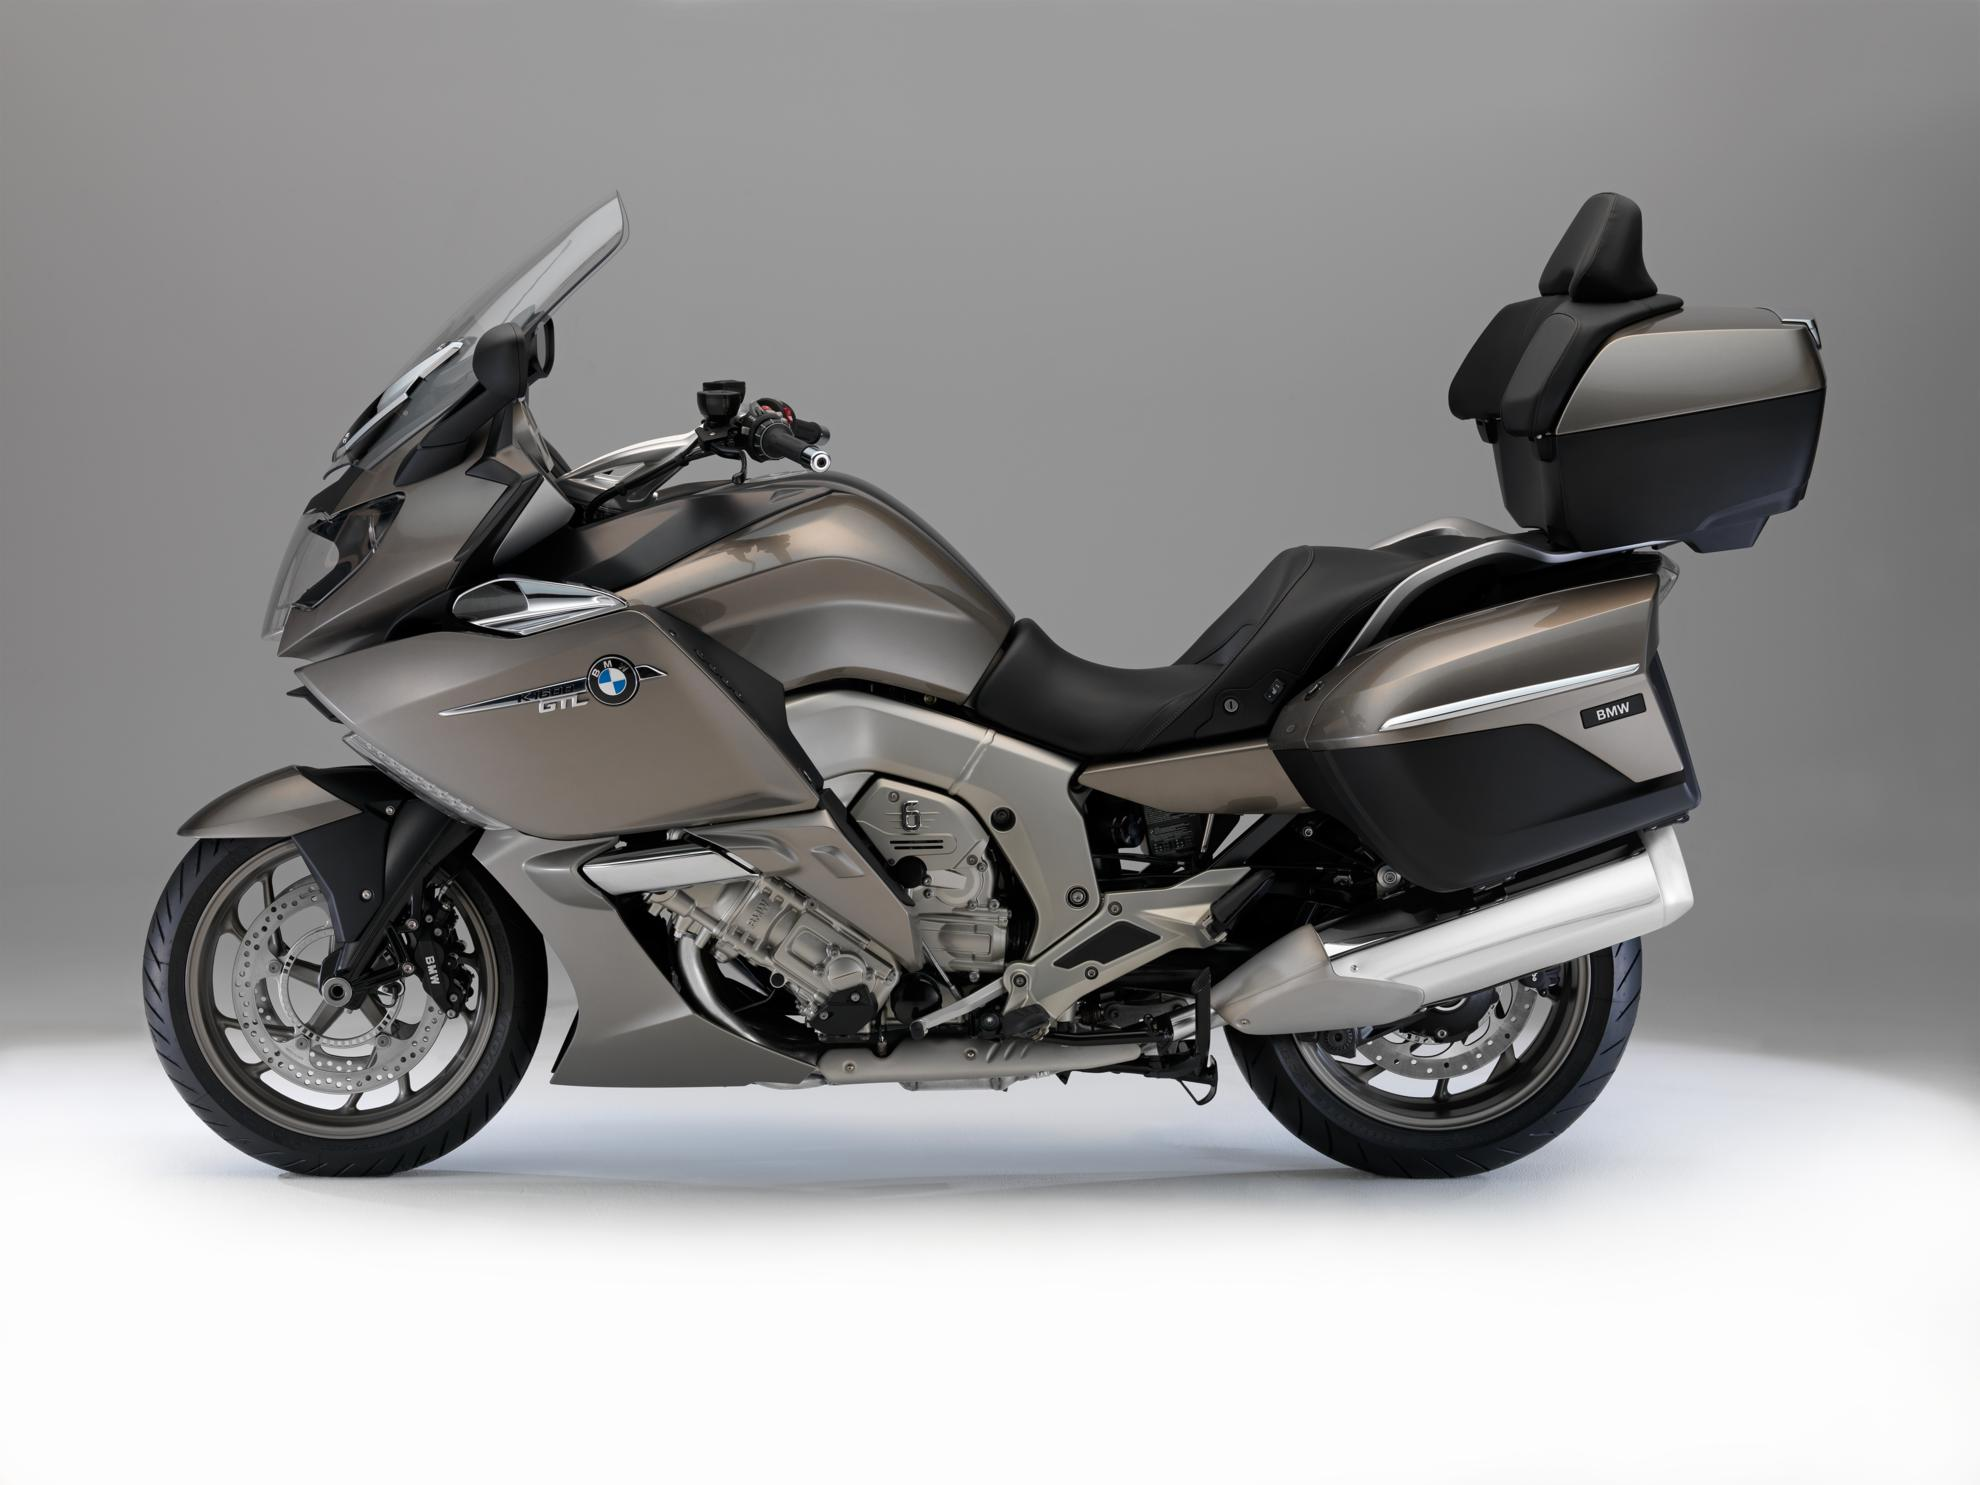 bmw motorrad motorcycles facelift measures for the model. Black Bedroom Furniture Sets. Home Design Ideas